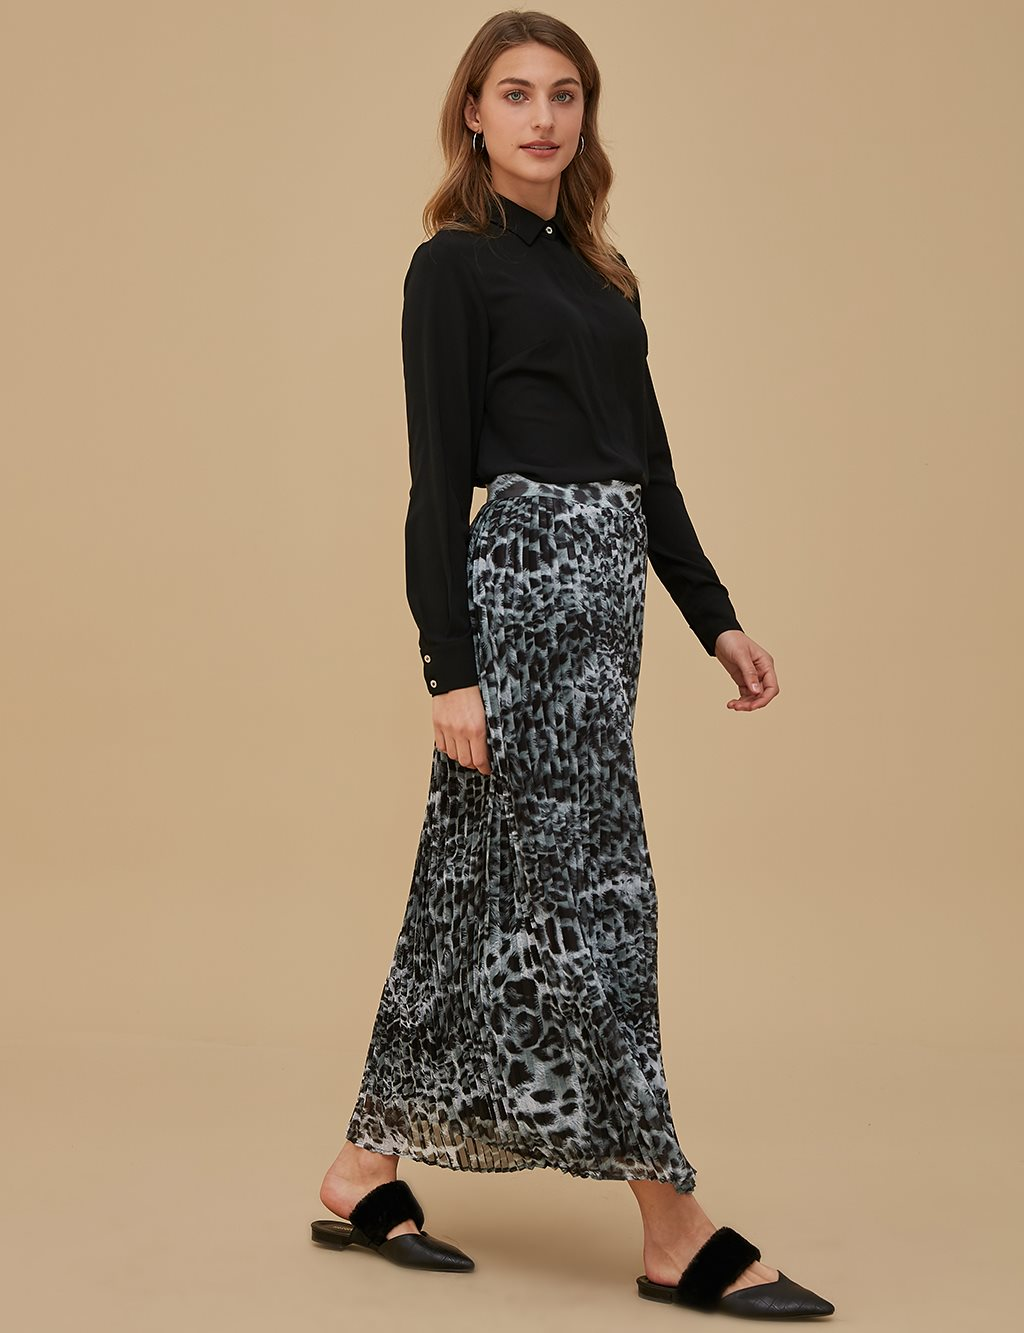 Pleated Leopard Skirt A9 12052 Black